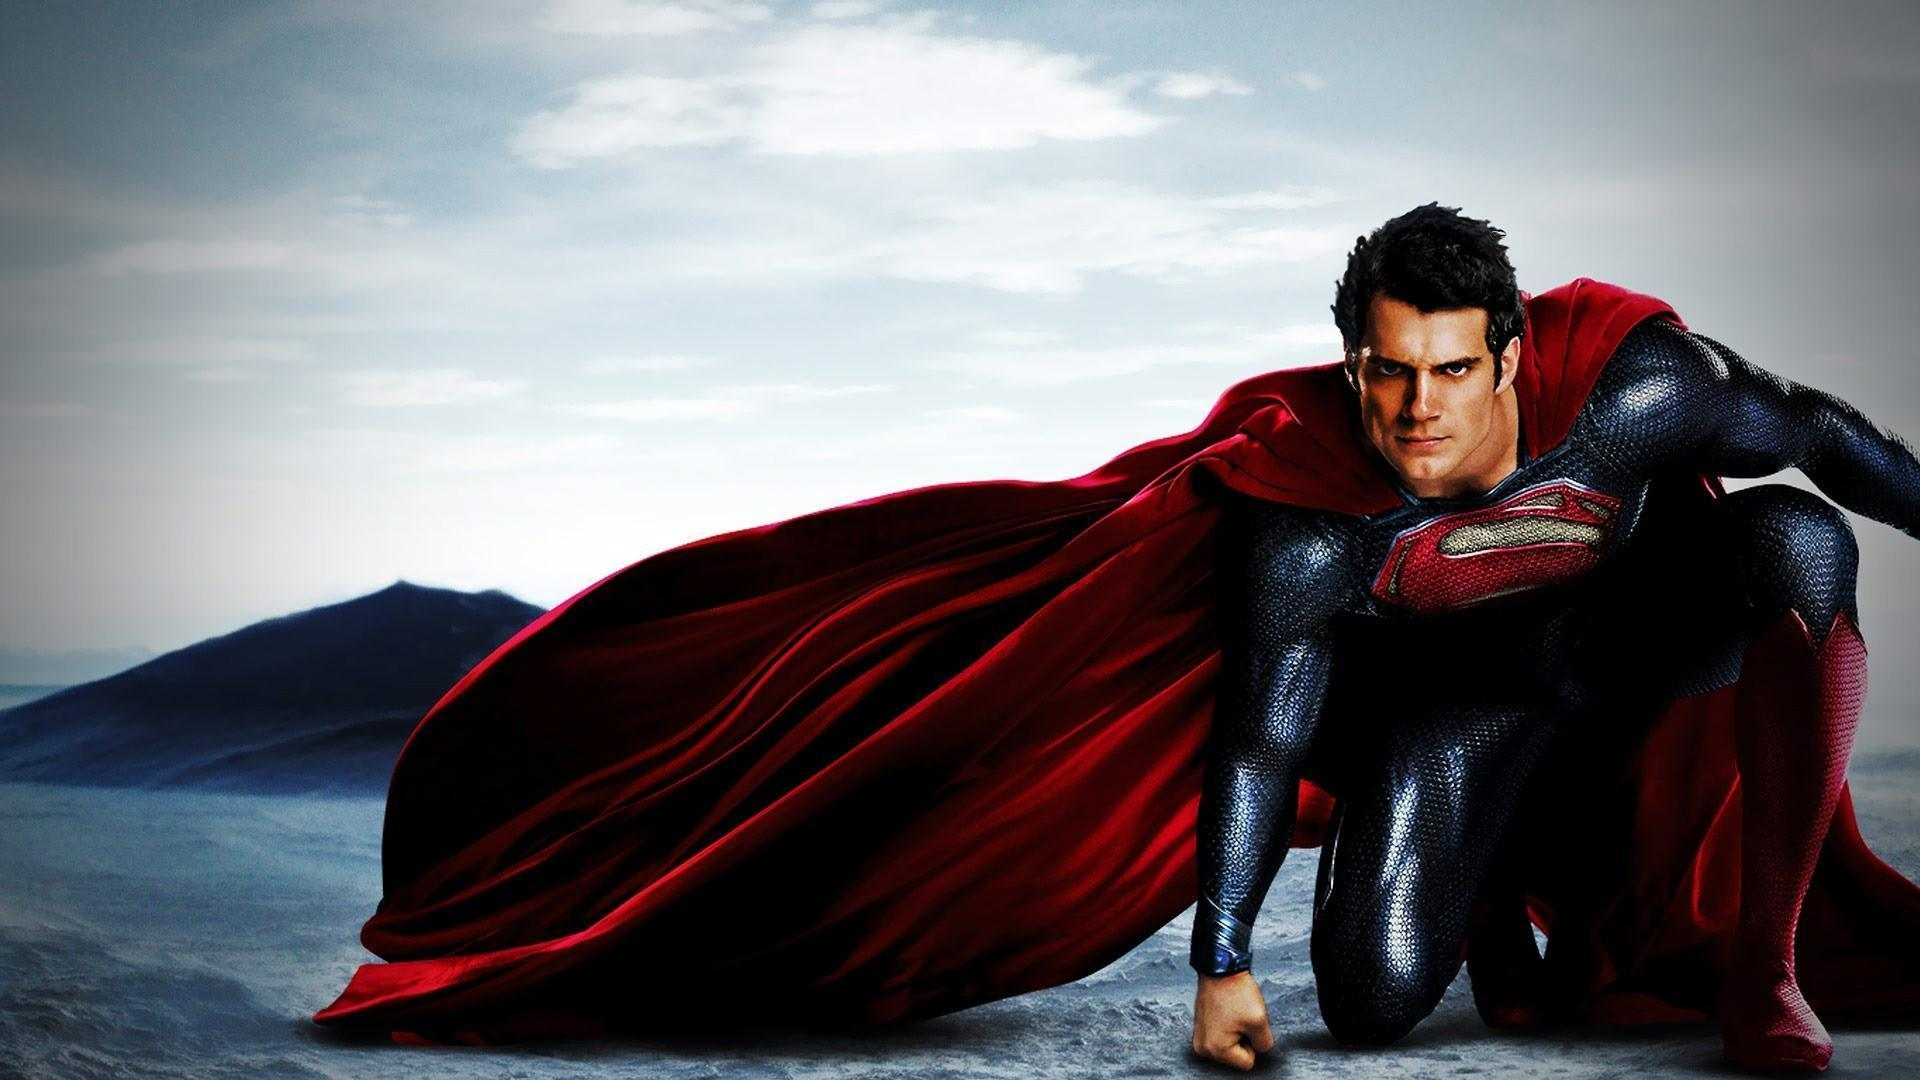 Superman Hd Wallpapers Superman Movie Wallpapers Cool Wallpapers ...